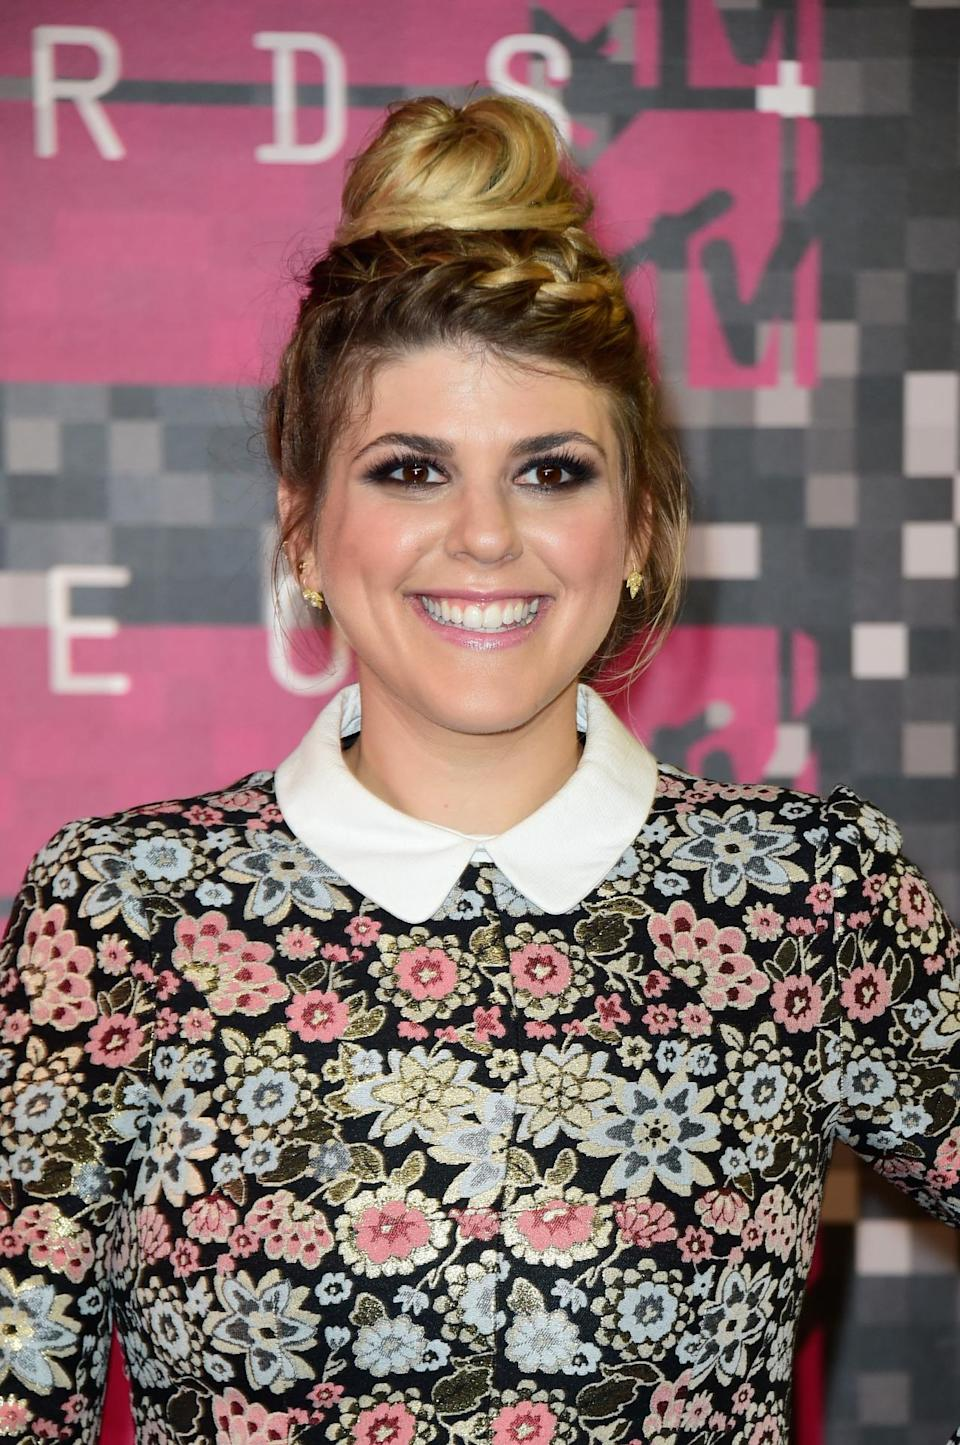 <p>The Awkward star walked the red carpet with a slightly messy top knot and wrap-around braids.</p><p>Source: Getty Images</p>